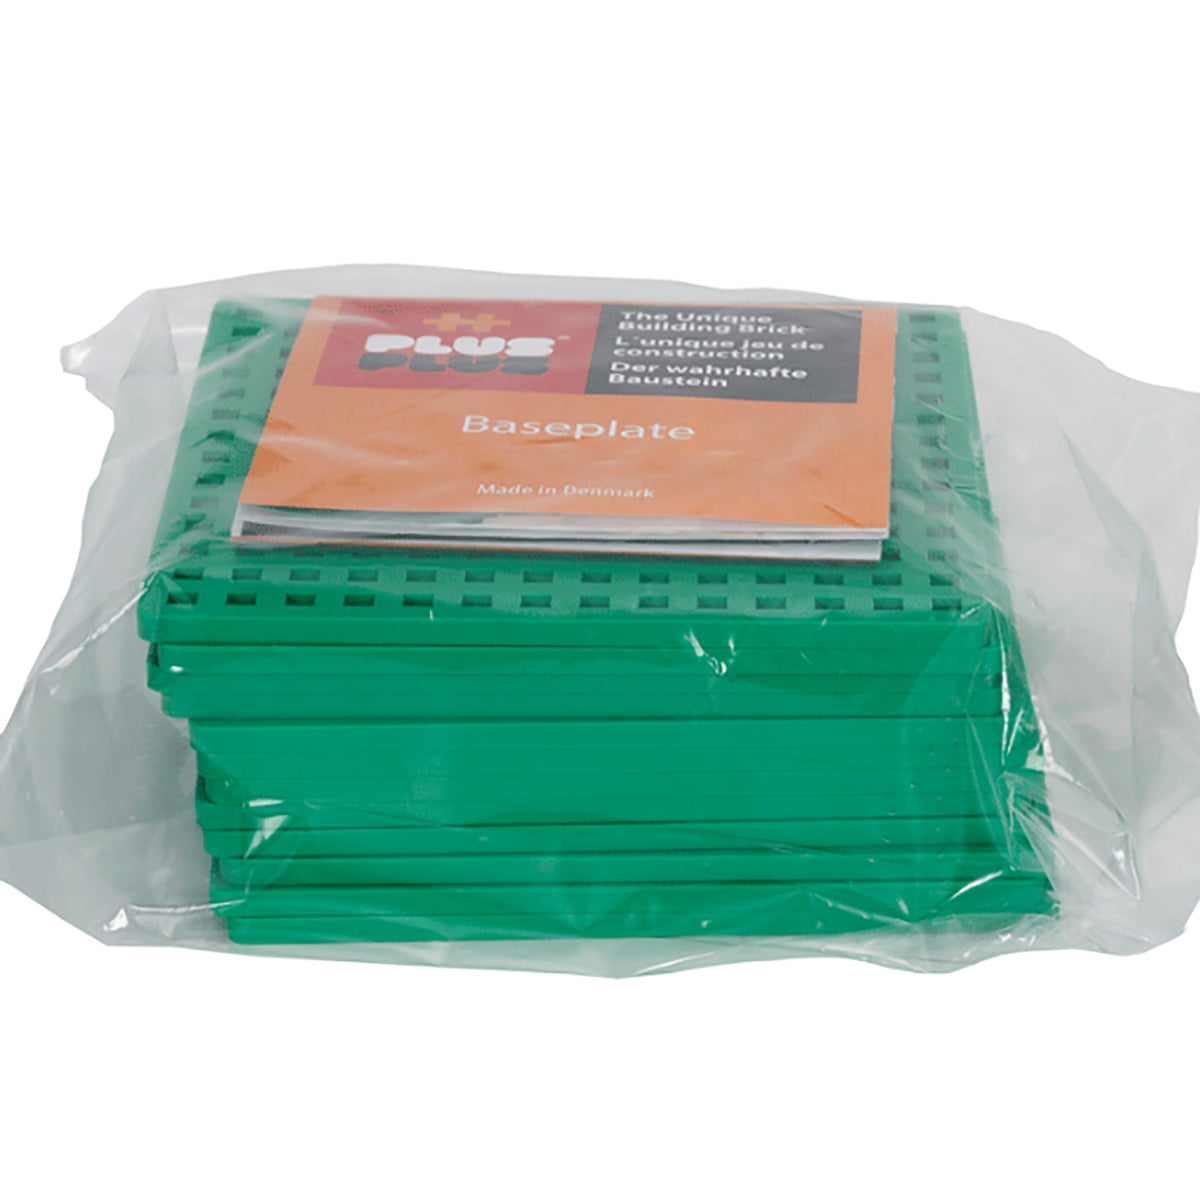 Baseplate 12-pack, Green